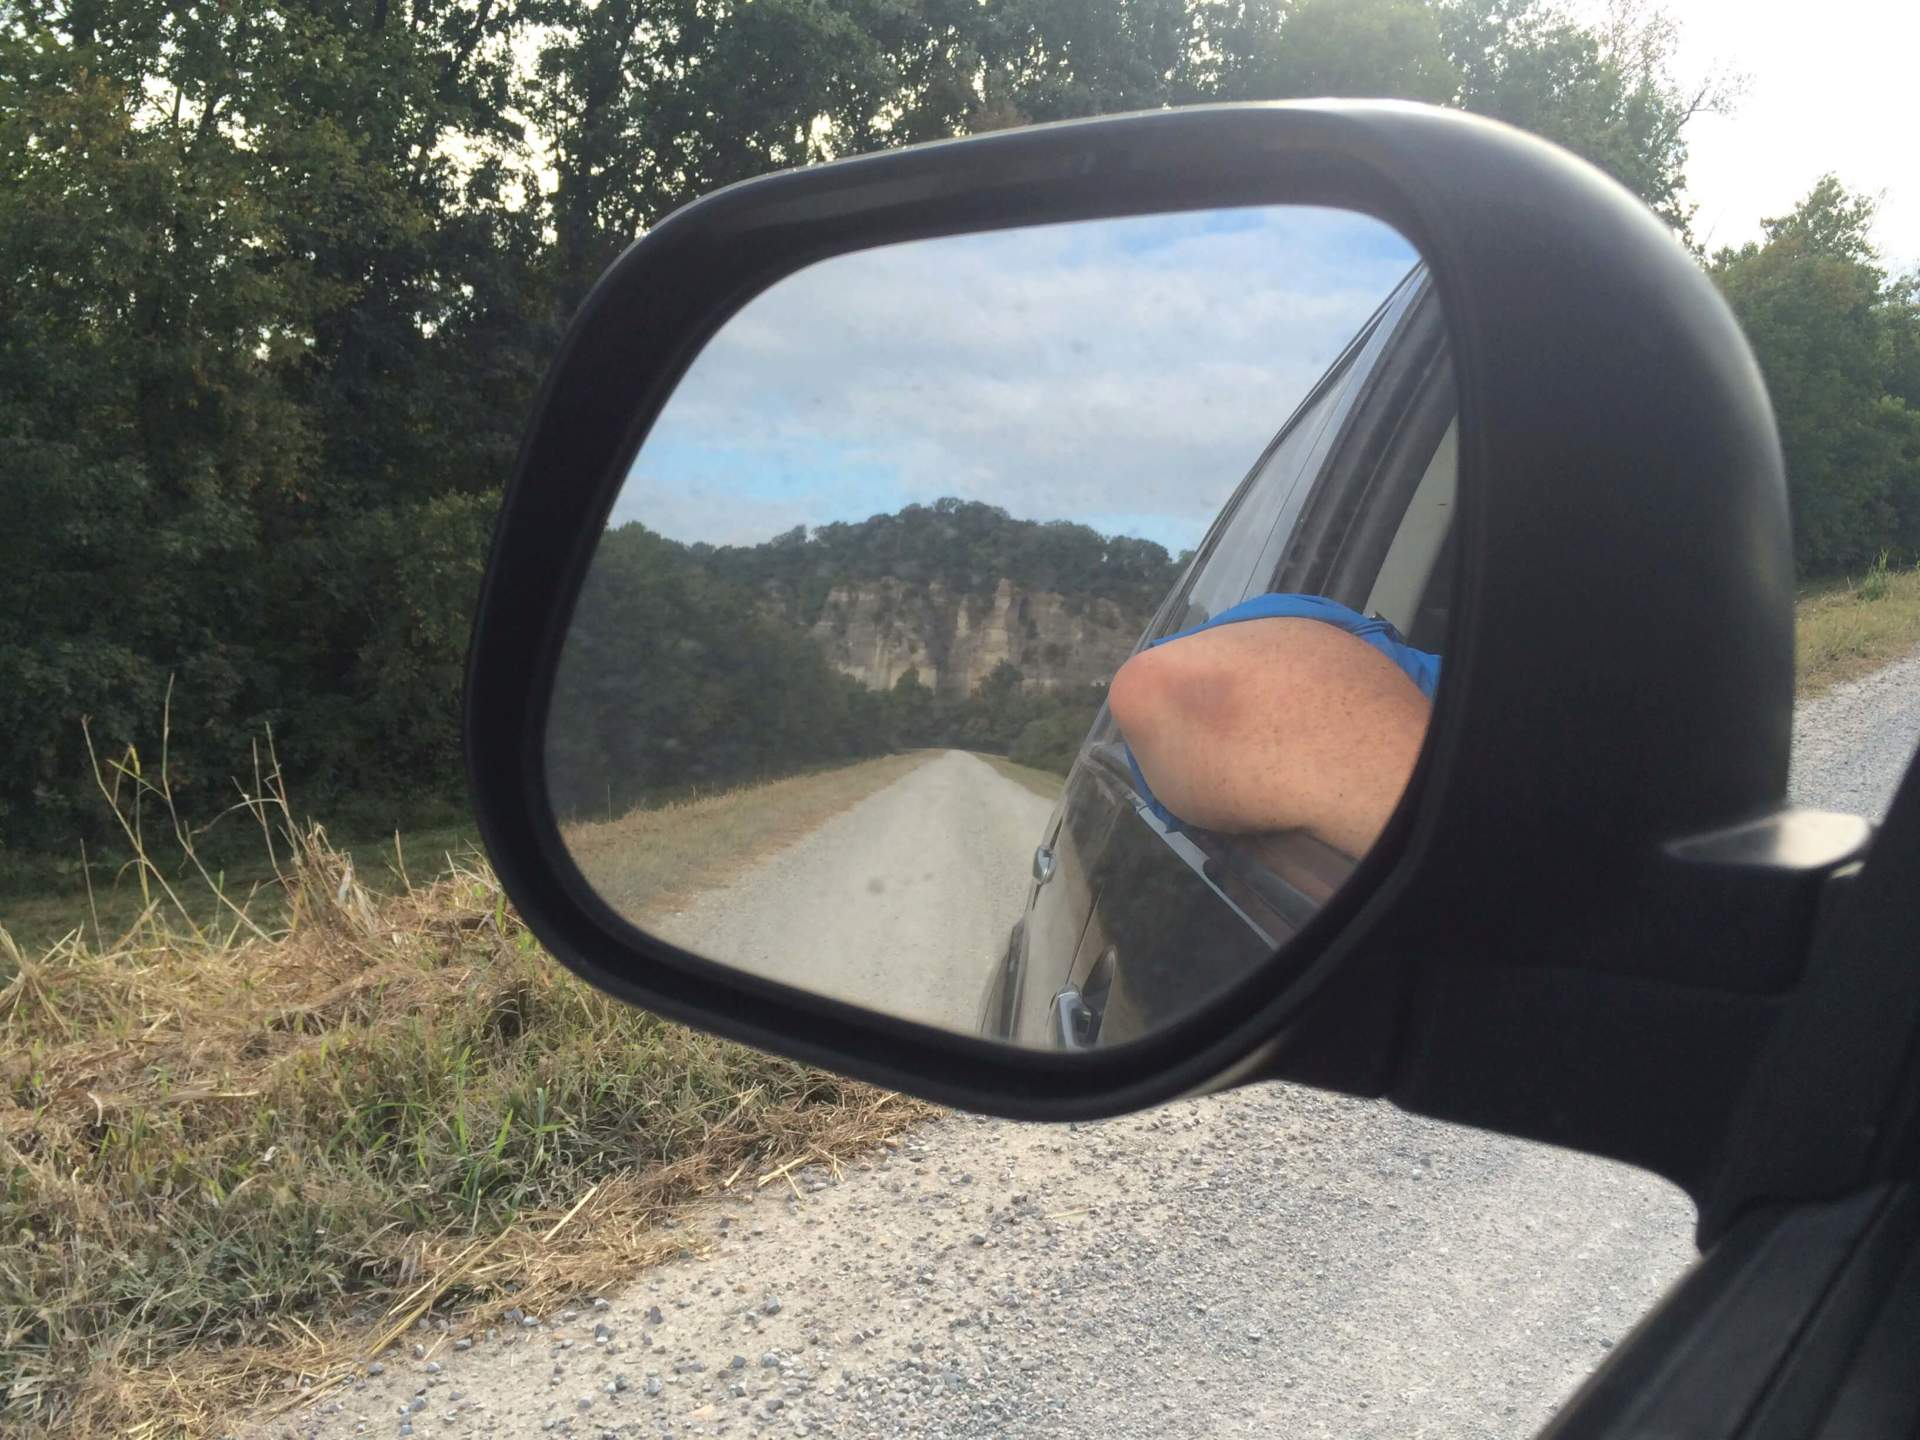 Car leaving with shawnee national forest showing in the rear mirror